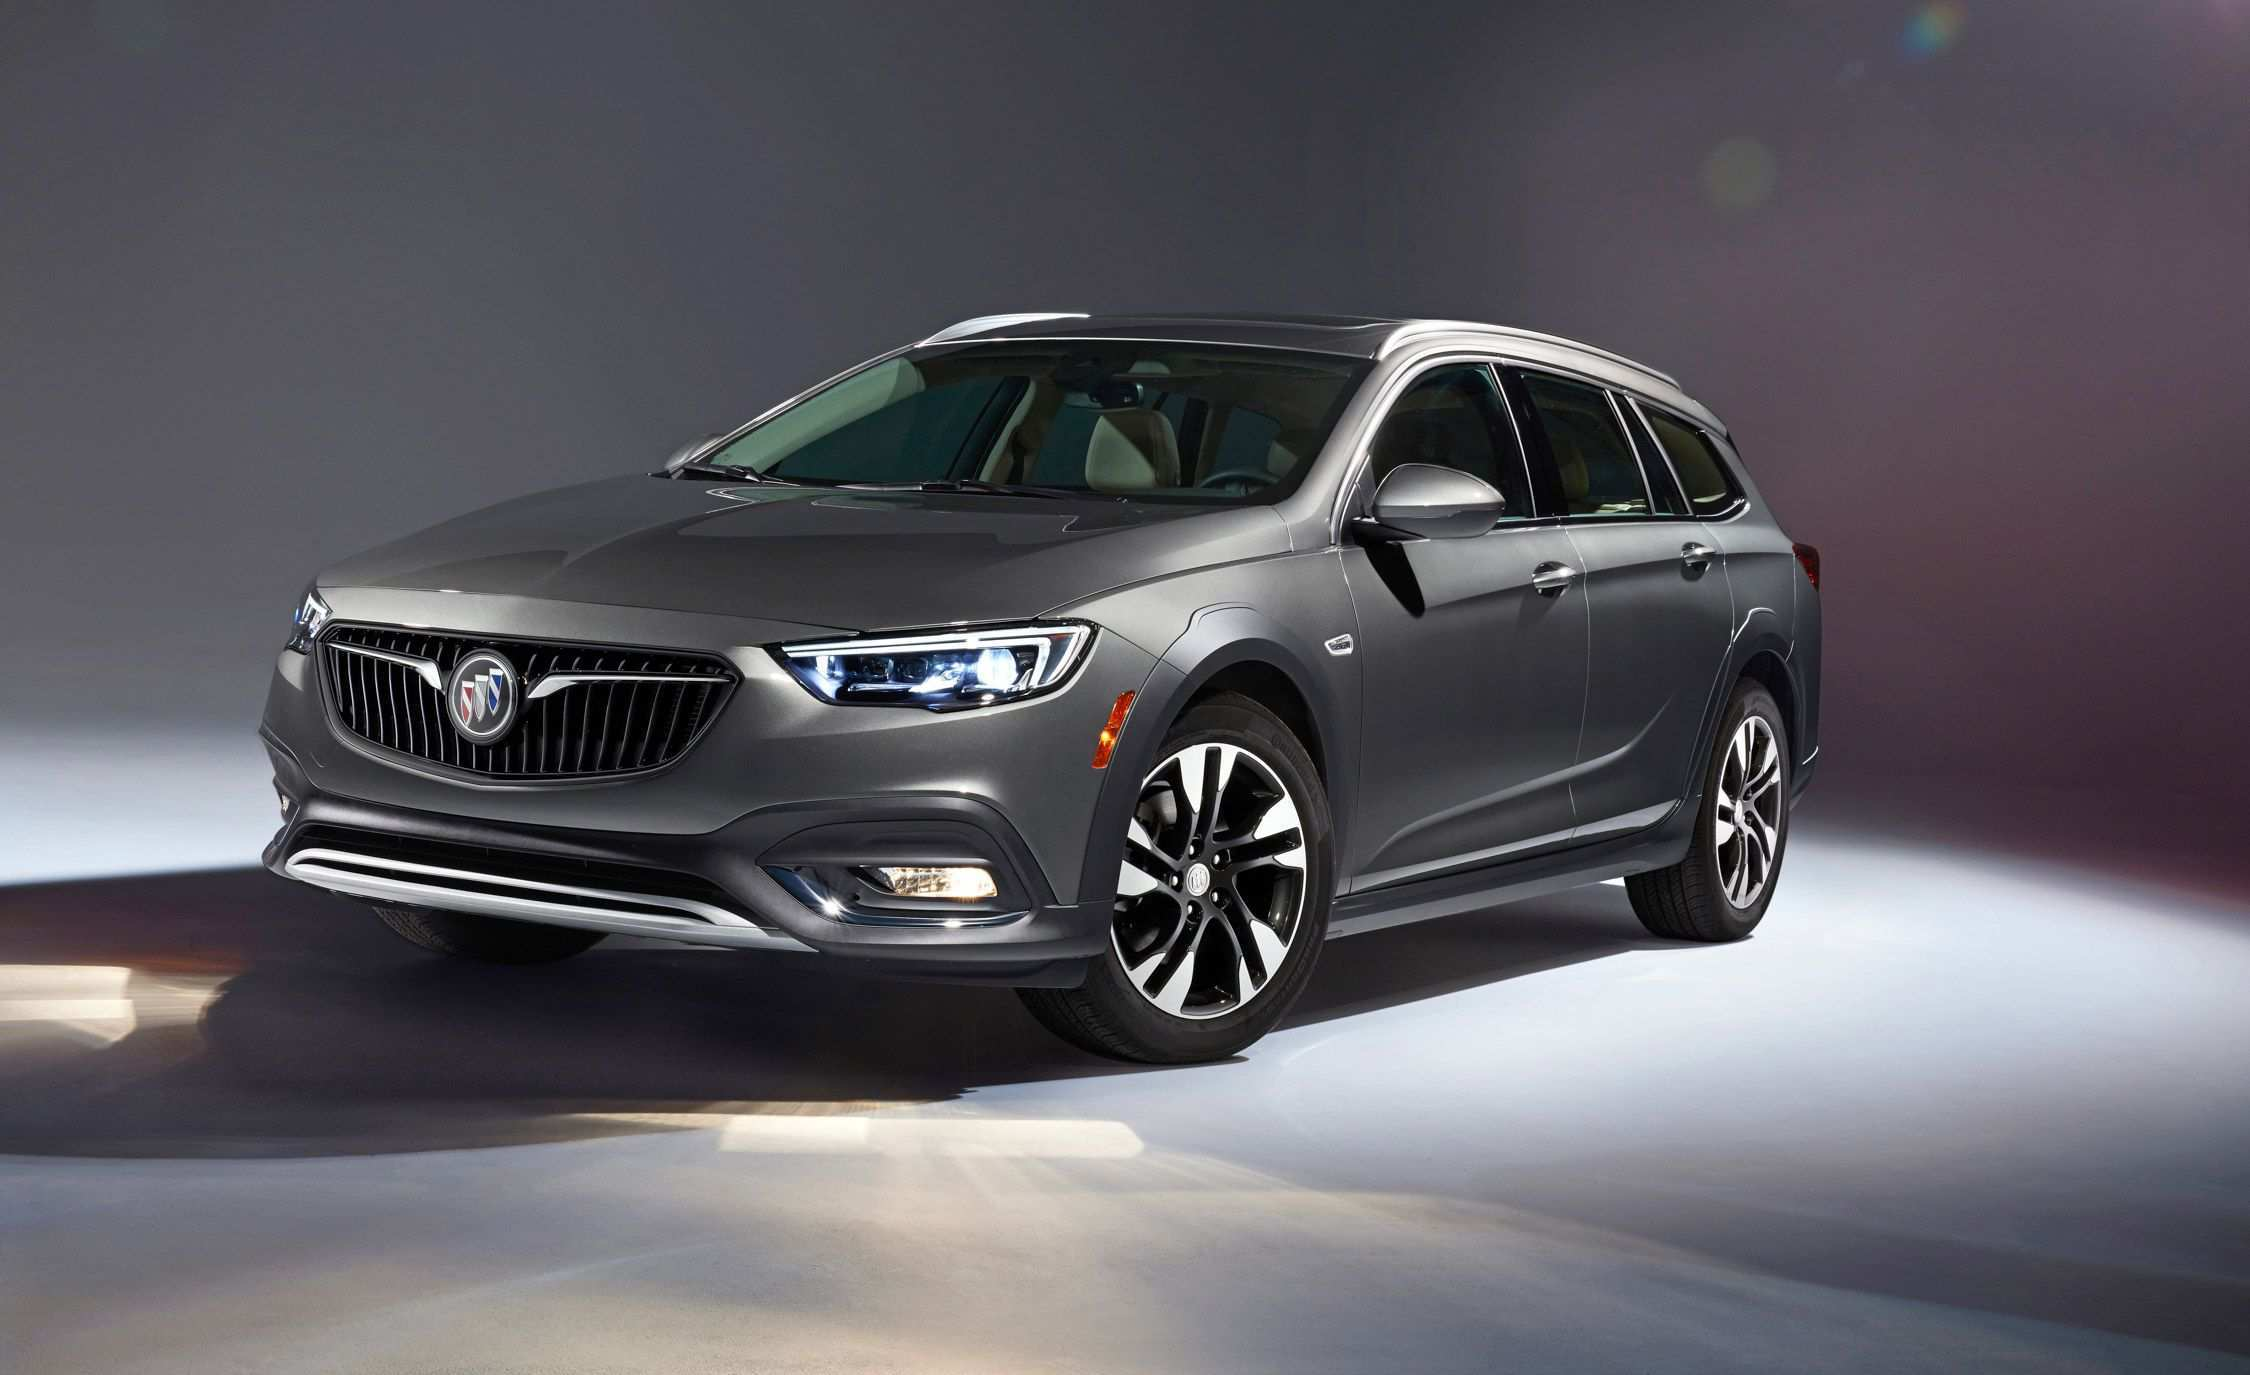 67 Gallery of The Buick Station Wagon 2019 Performance Concept with The Buick Station Wagon 2019 Performance